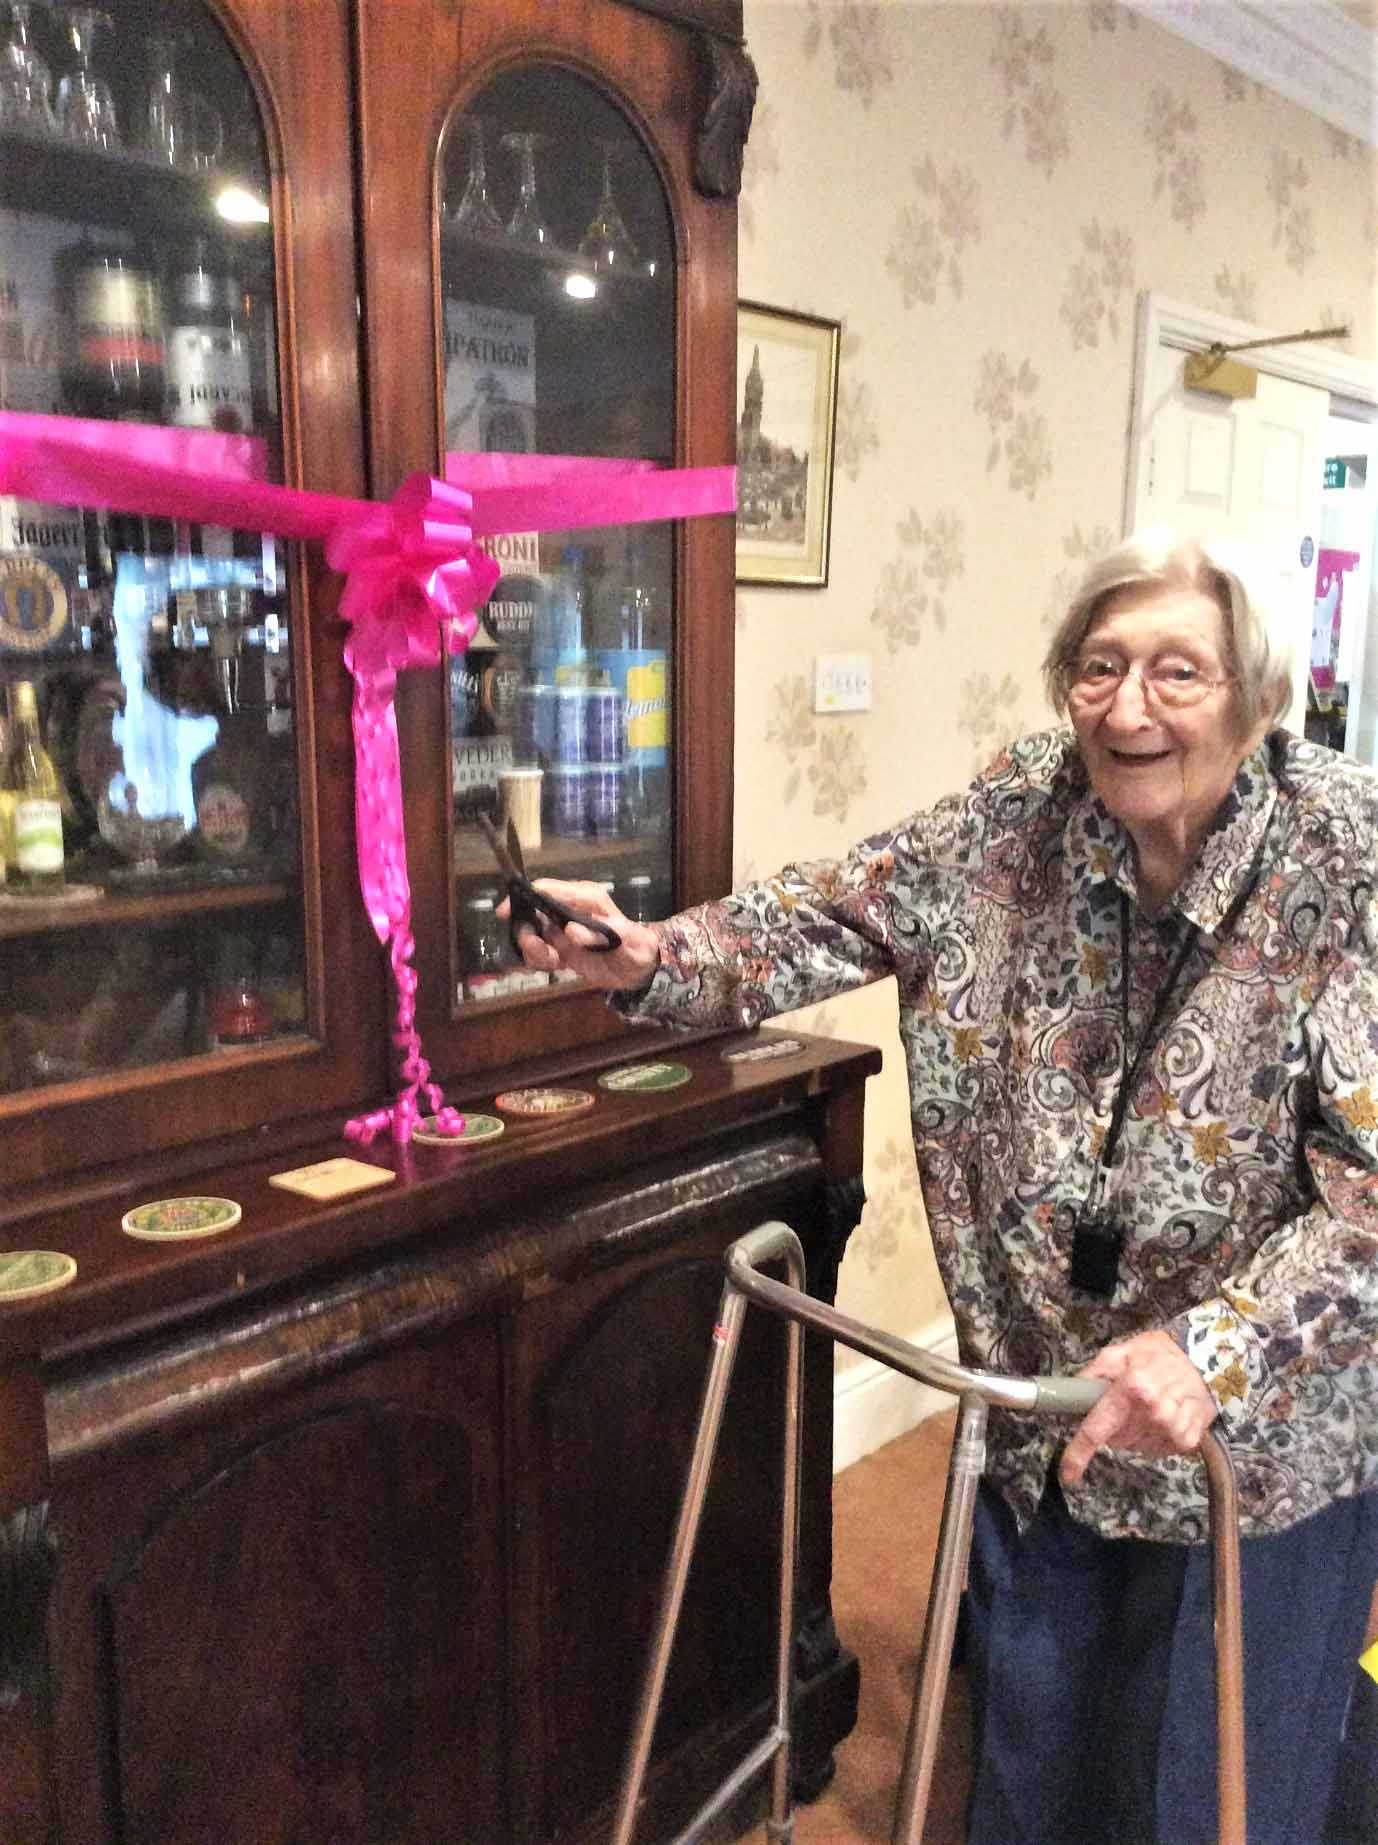 """Cheers"" to resident Joyce's new bar at The Lawns Care Home in Oadby"